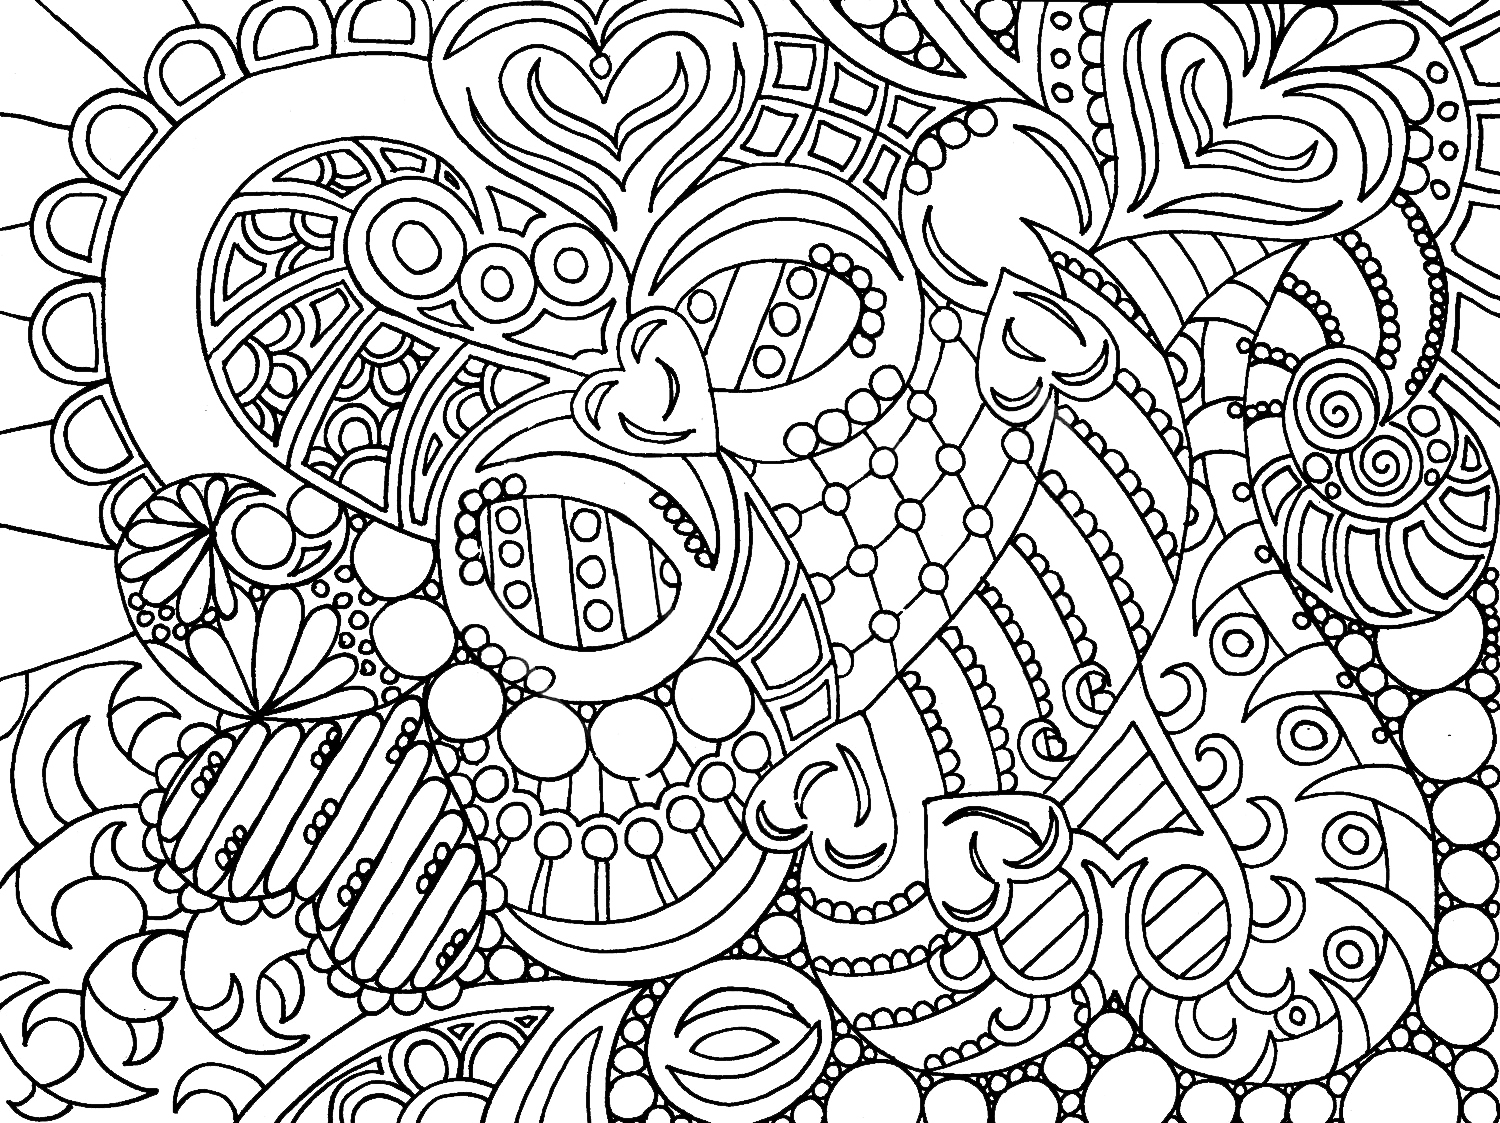 coloring pages for tweens - 2177